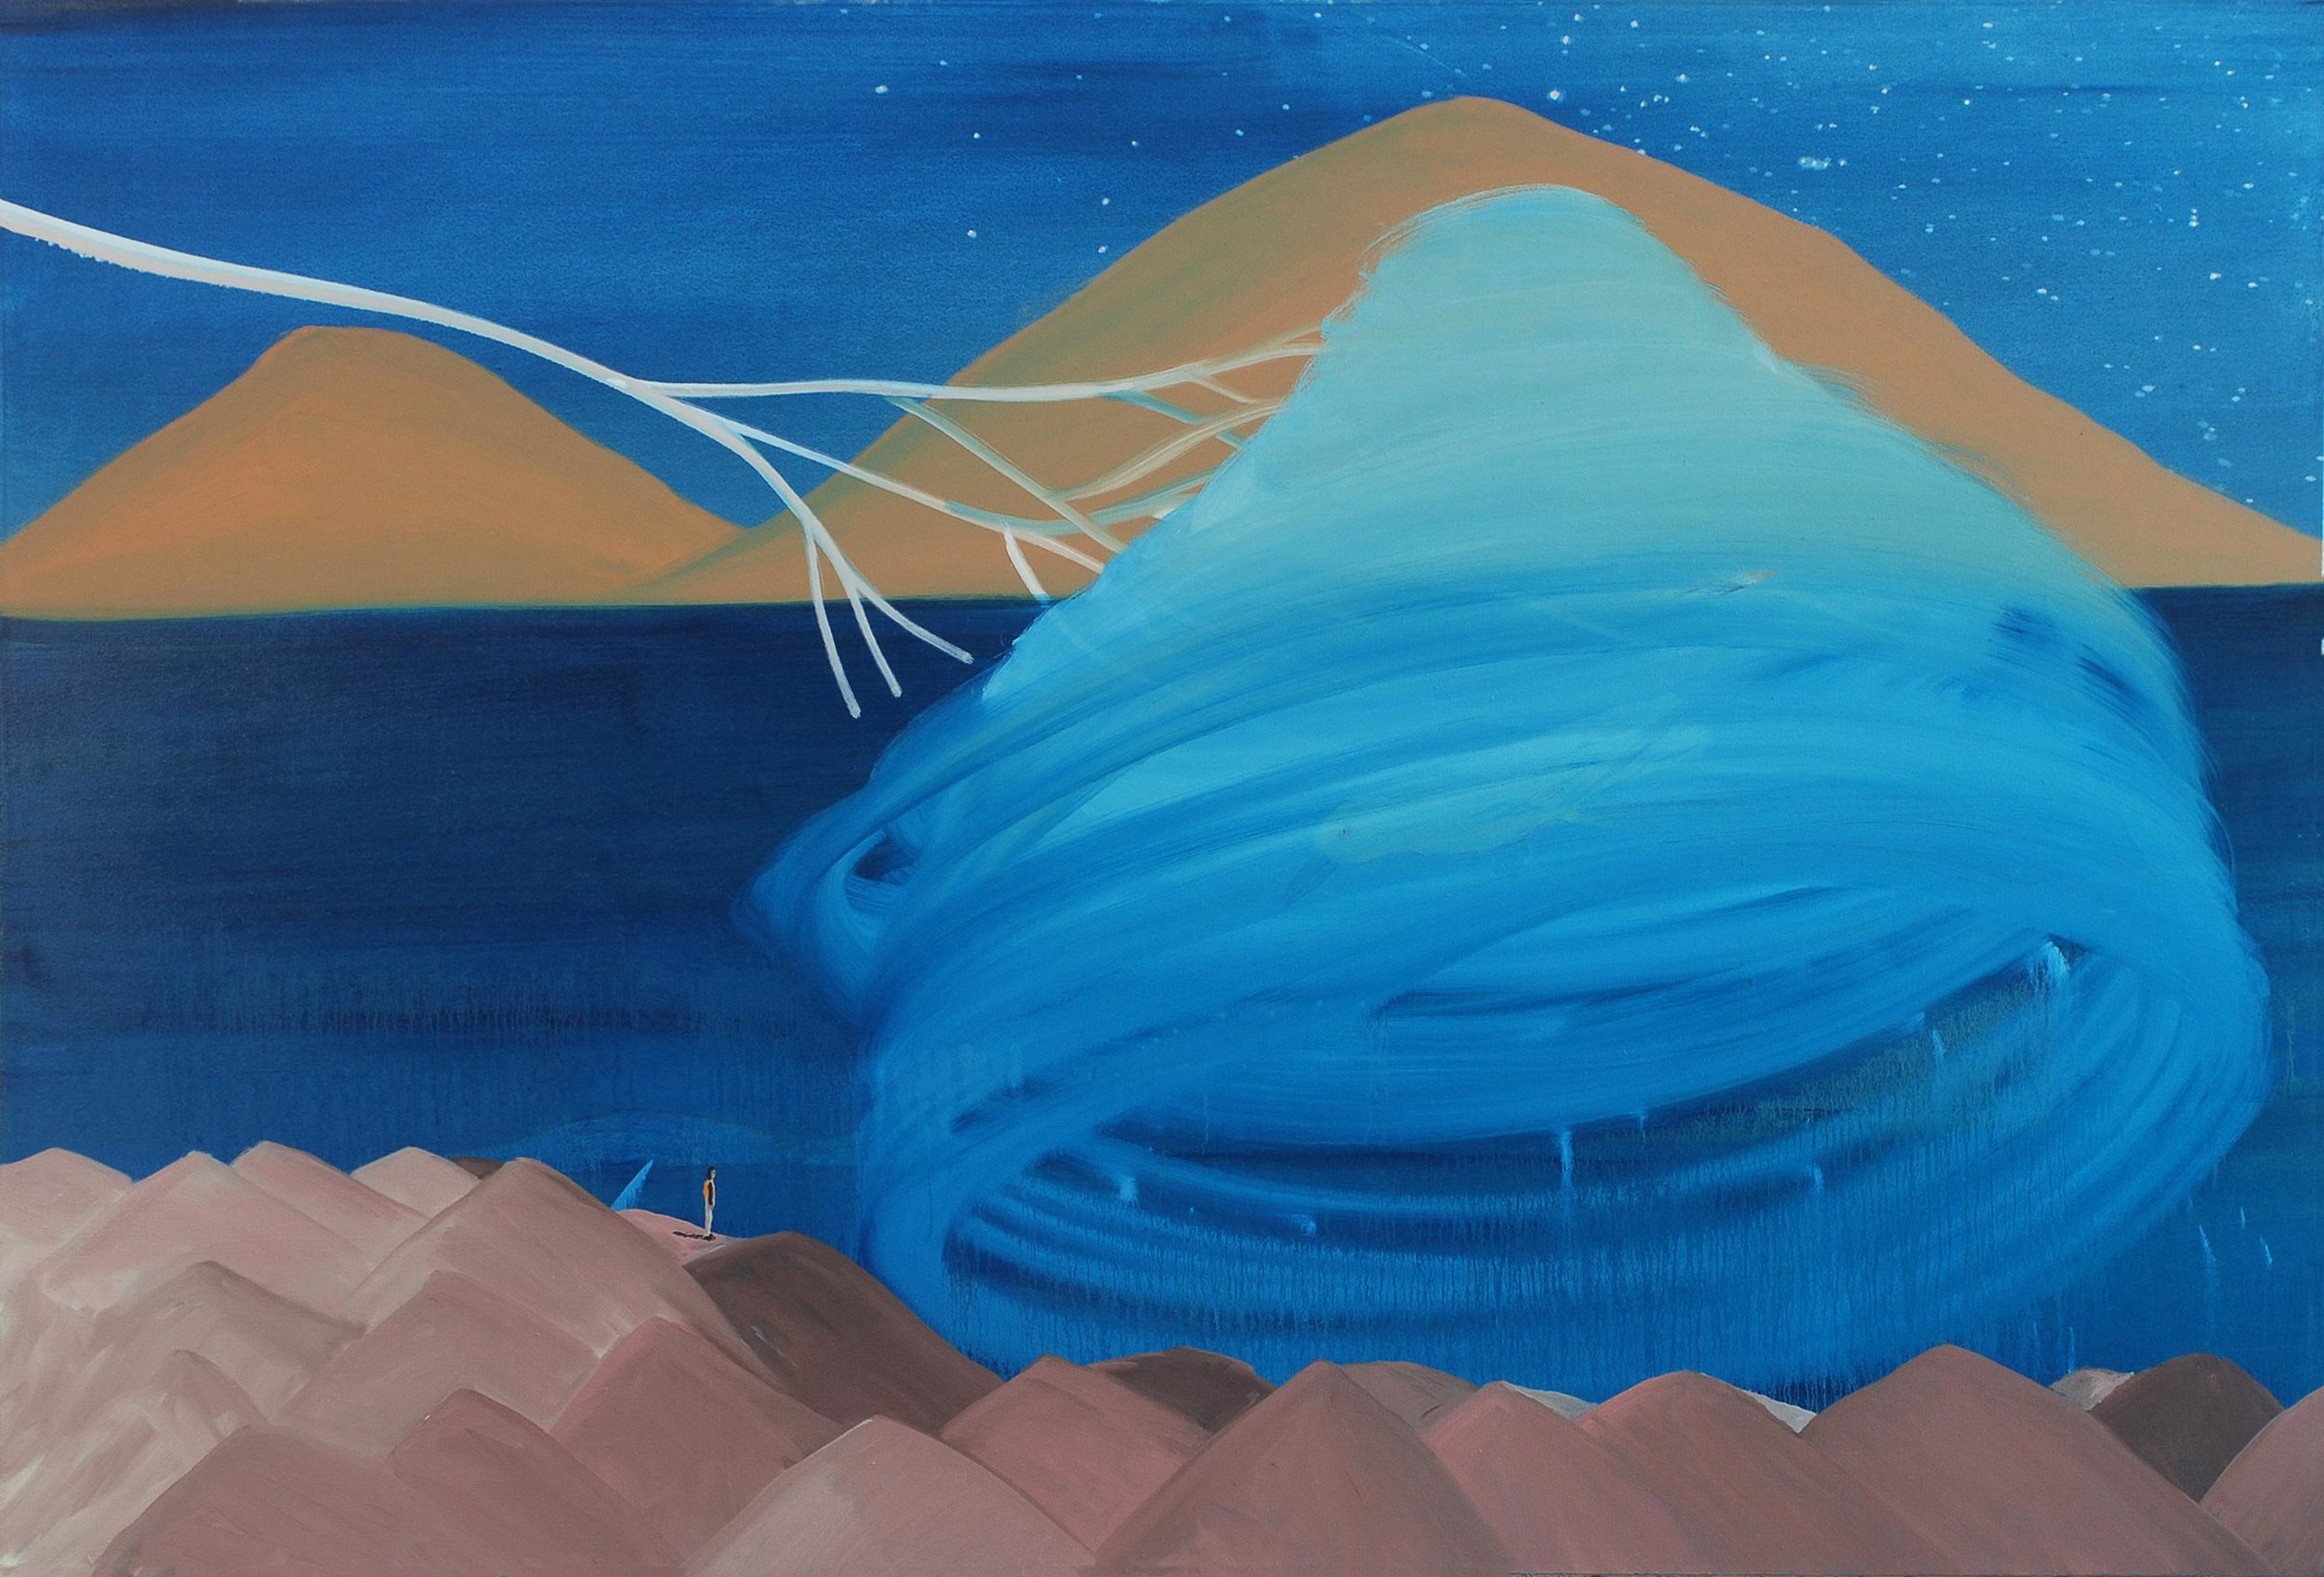 Generator, 2010    Oil on canvas, 147x178 cm